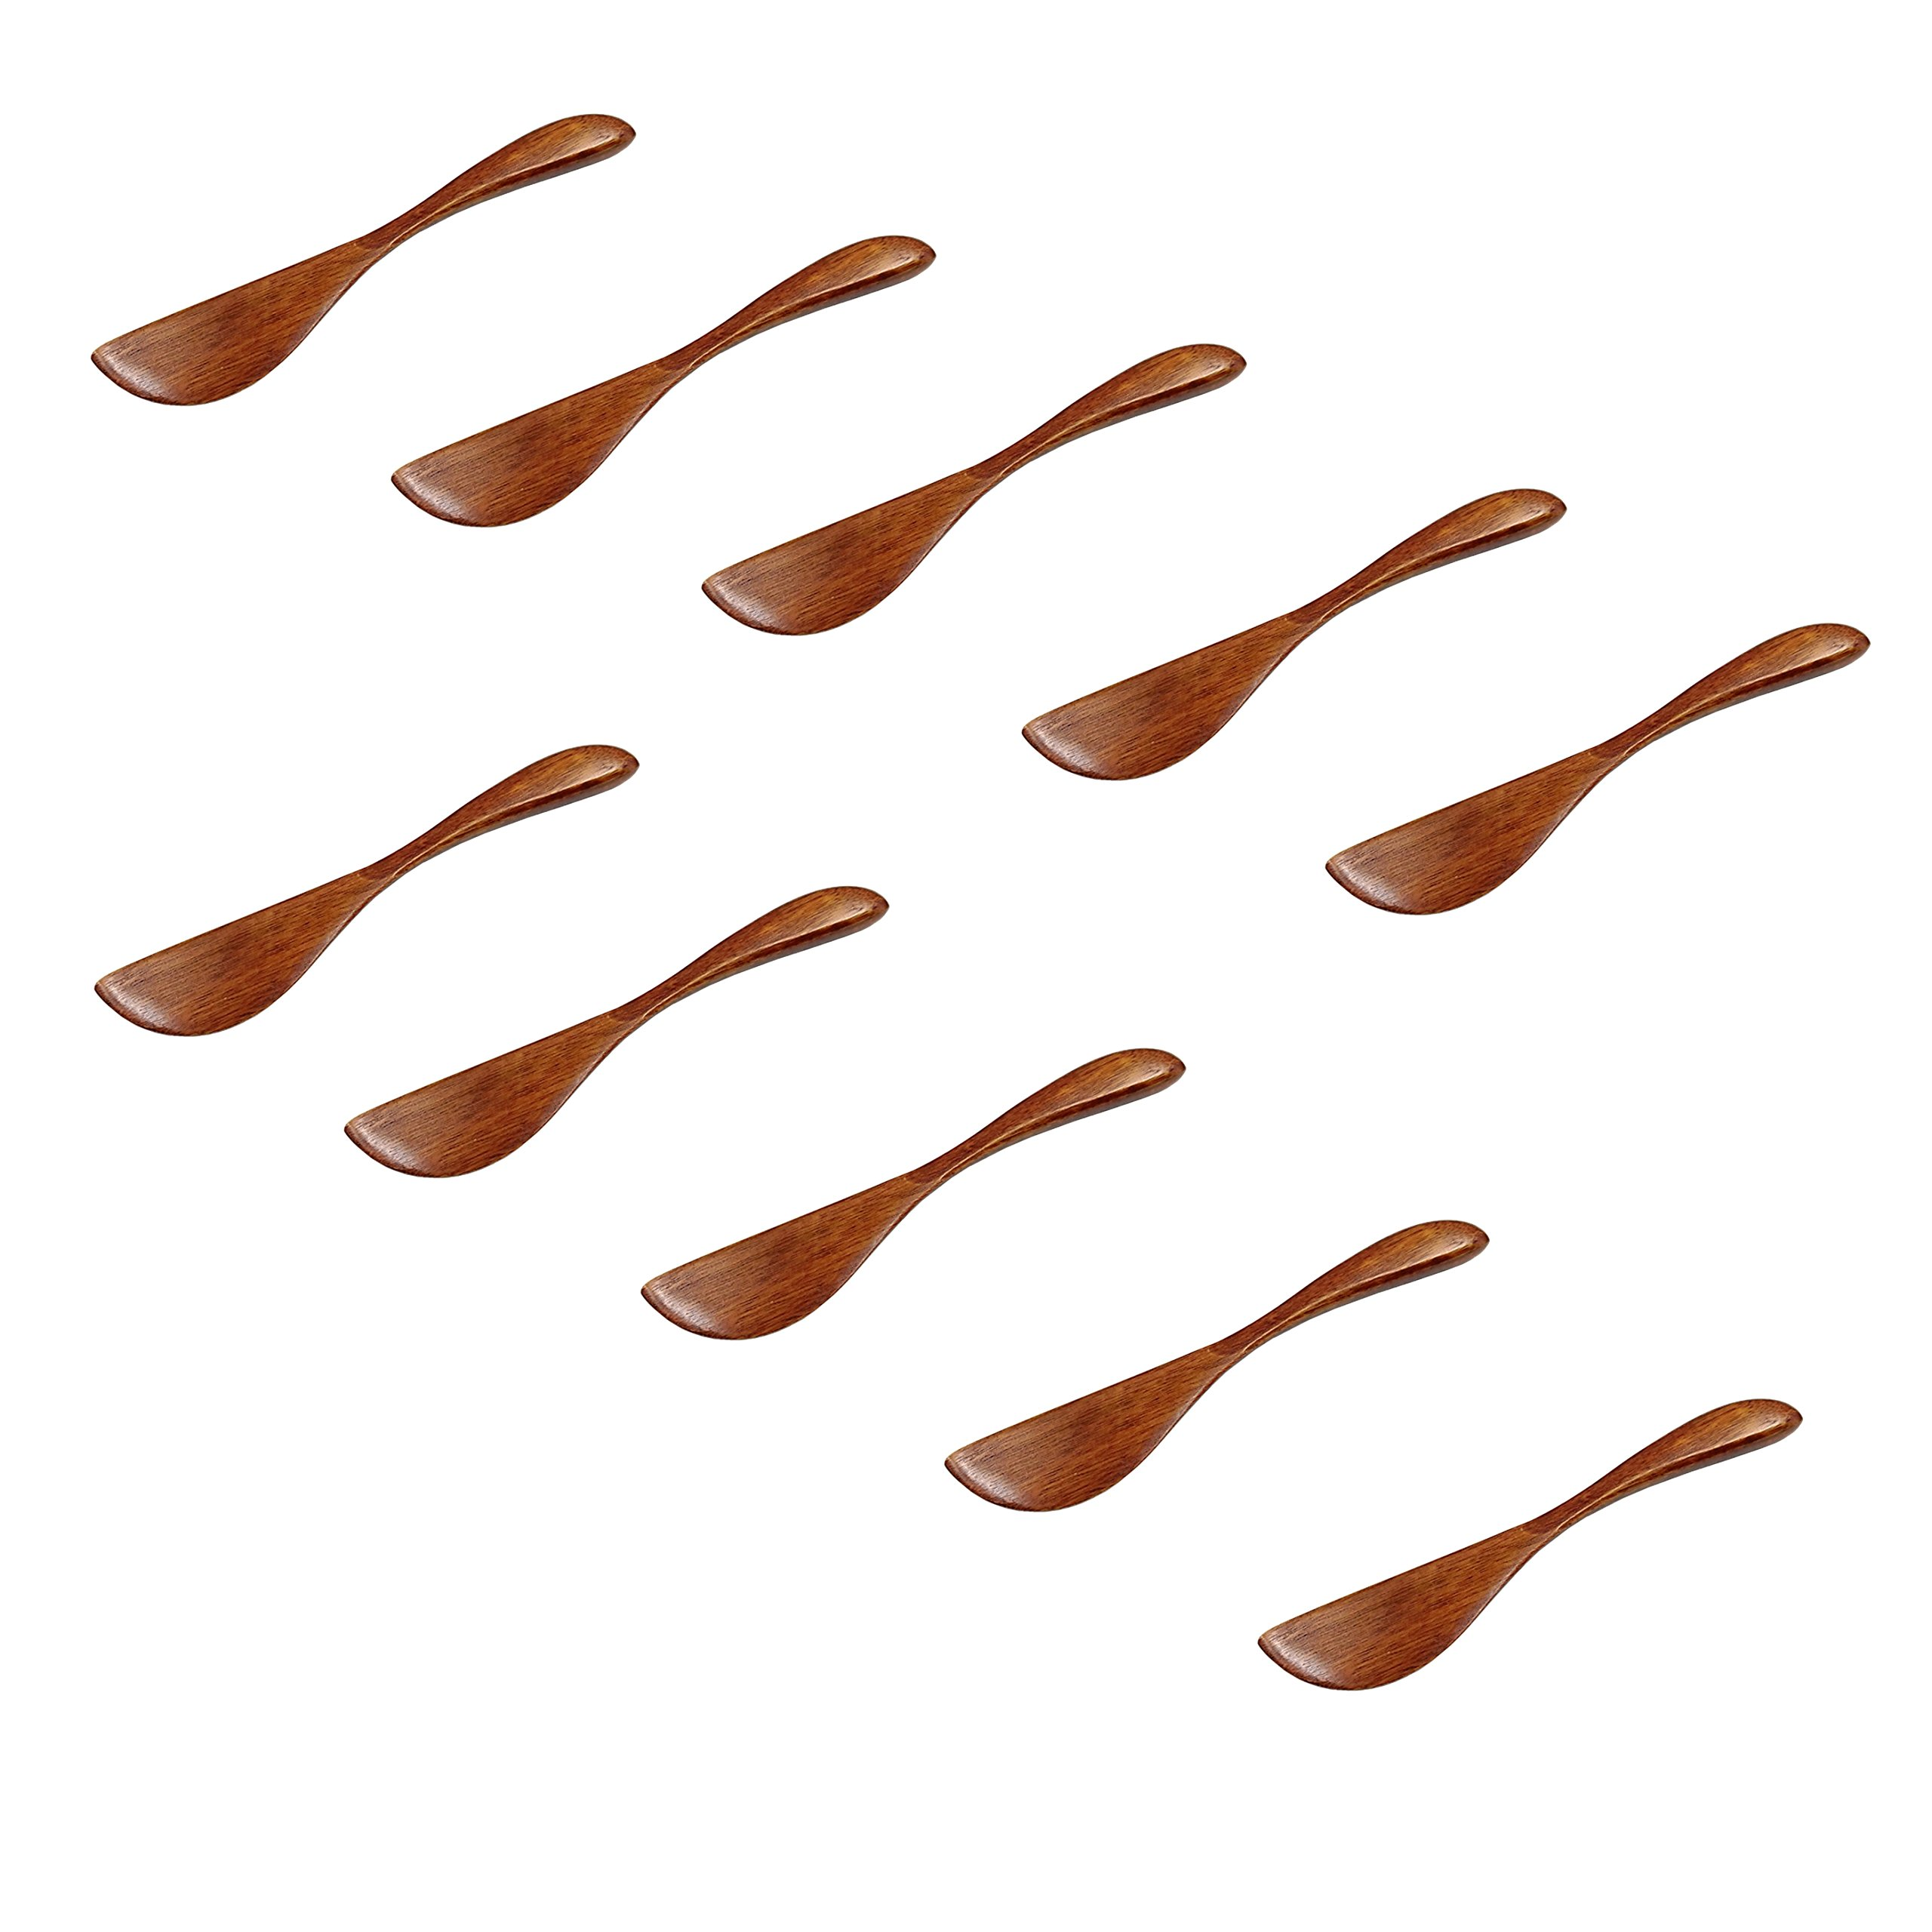 M2cbridge Natural Wooden Butter Bagels Cheese Knife Jelly Spreader, Set of 10